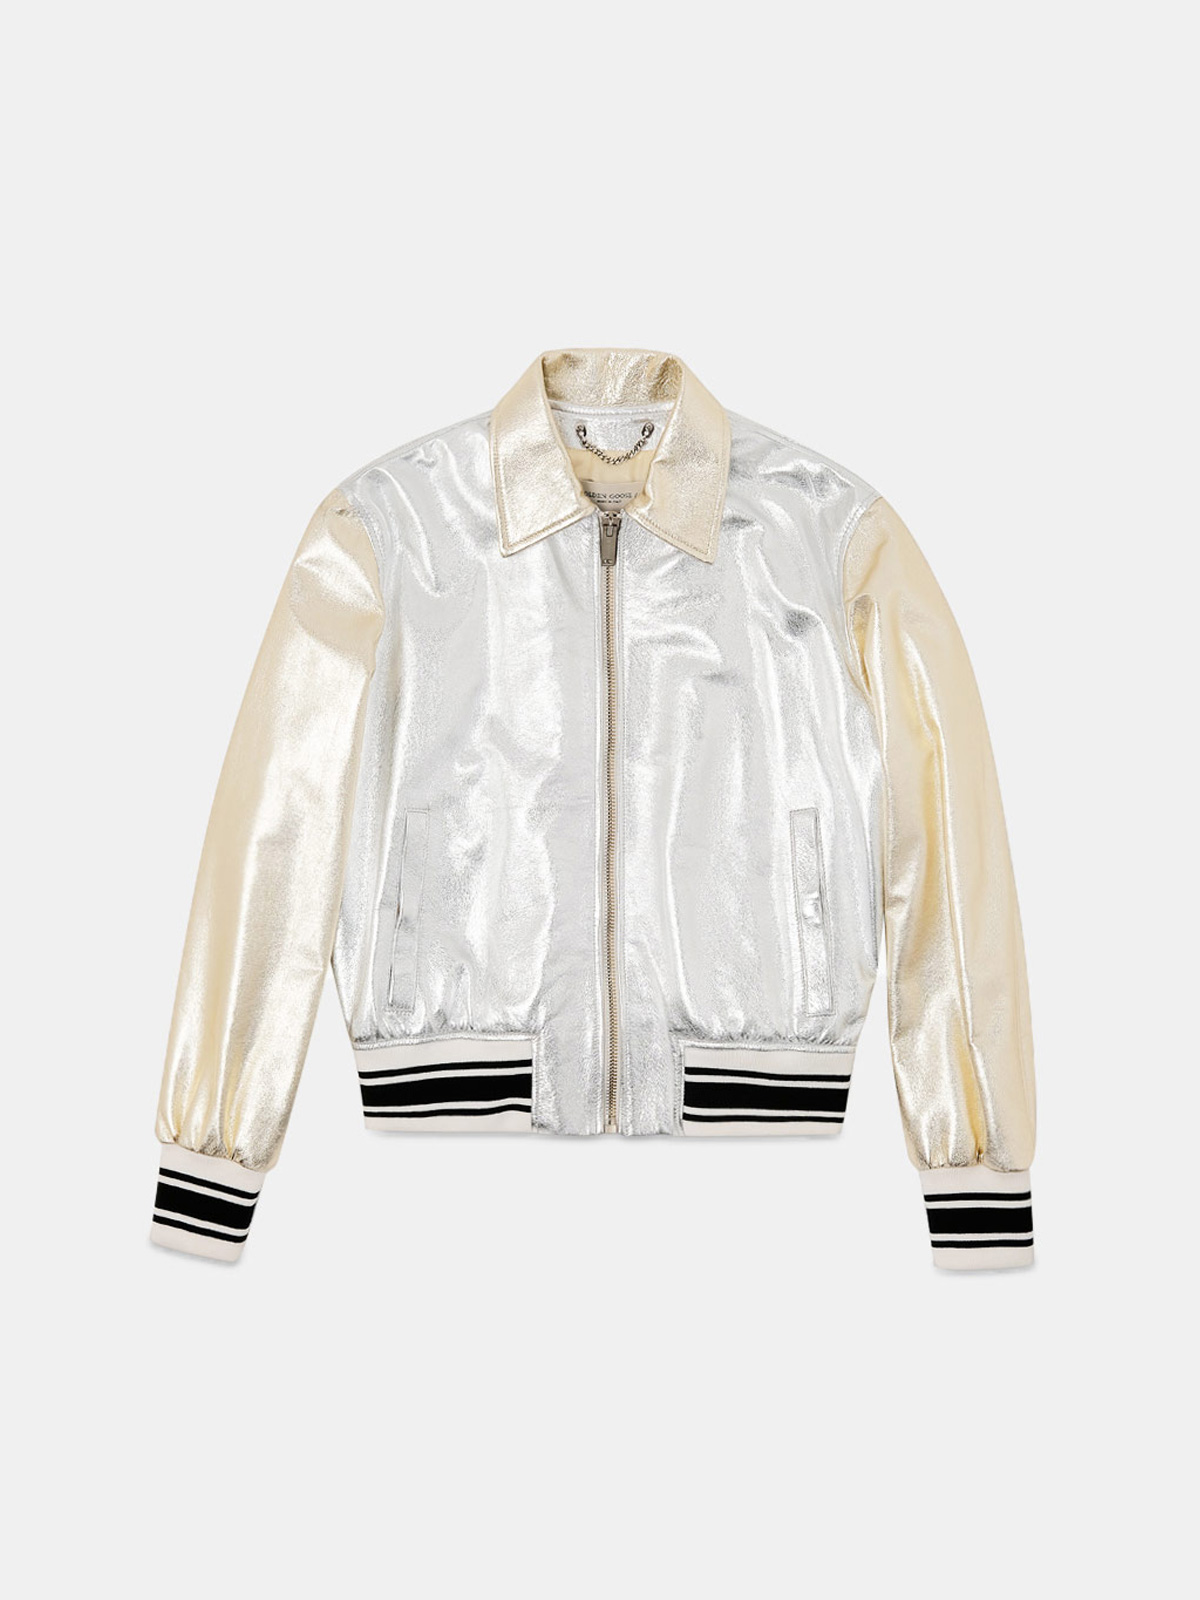 Golden Goose - Angelica bomber jacket in gold and silver leather in